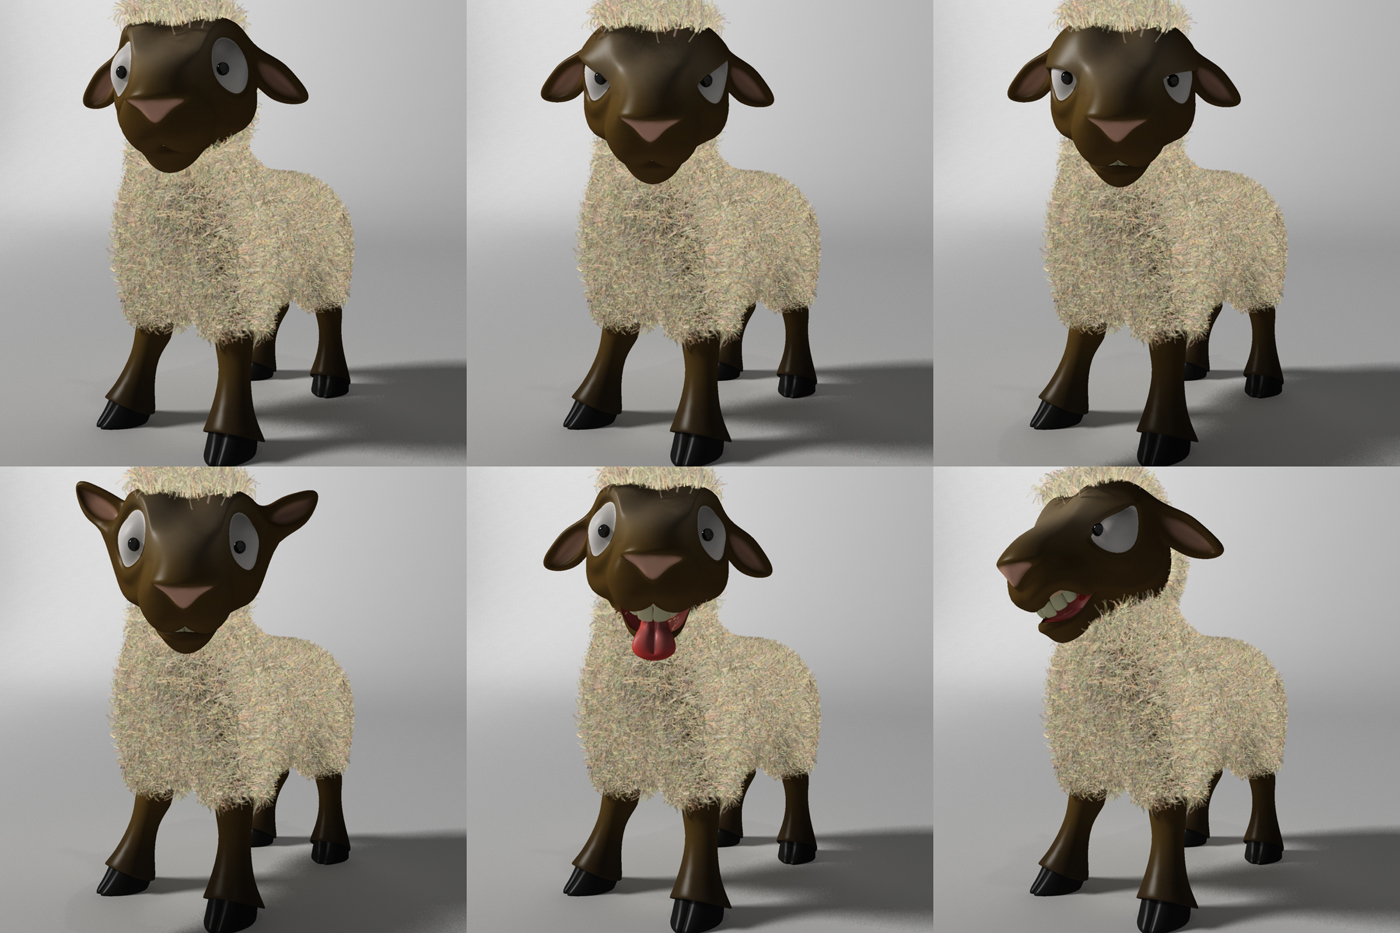 cartoon sheep rigged 3d model 3ds max fbx  obj 277475